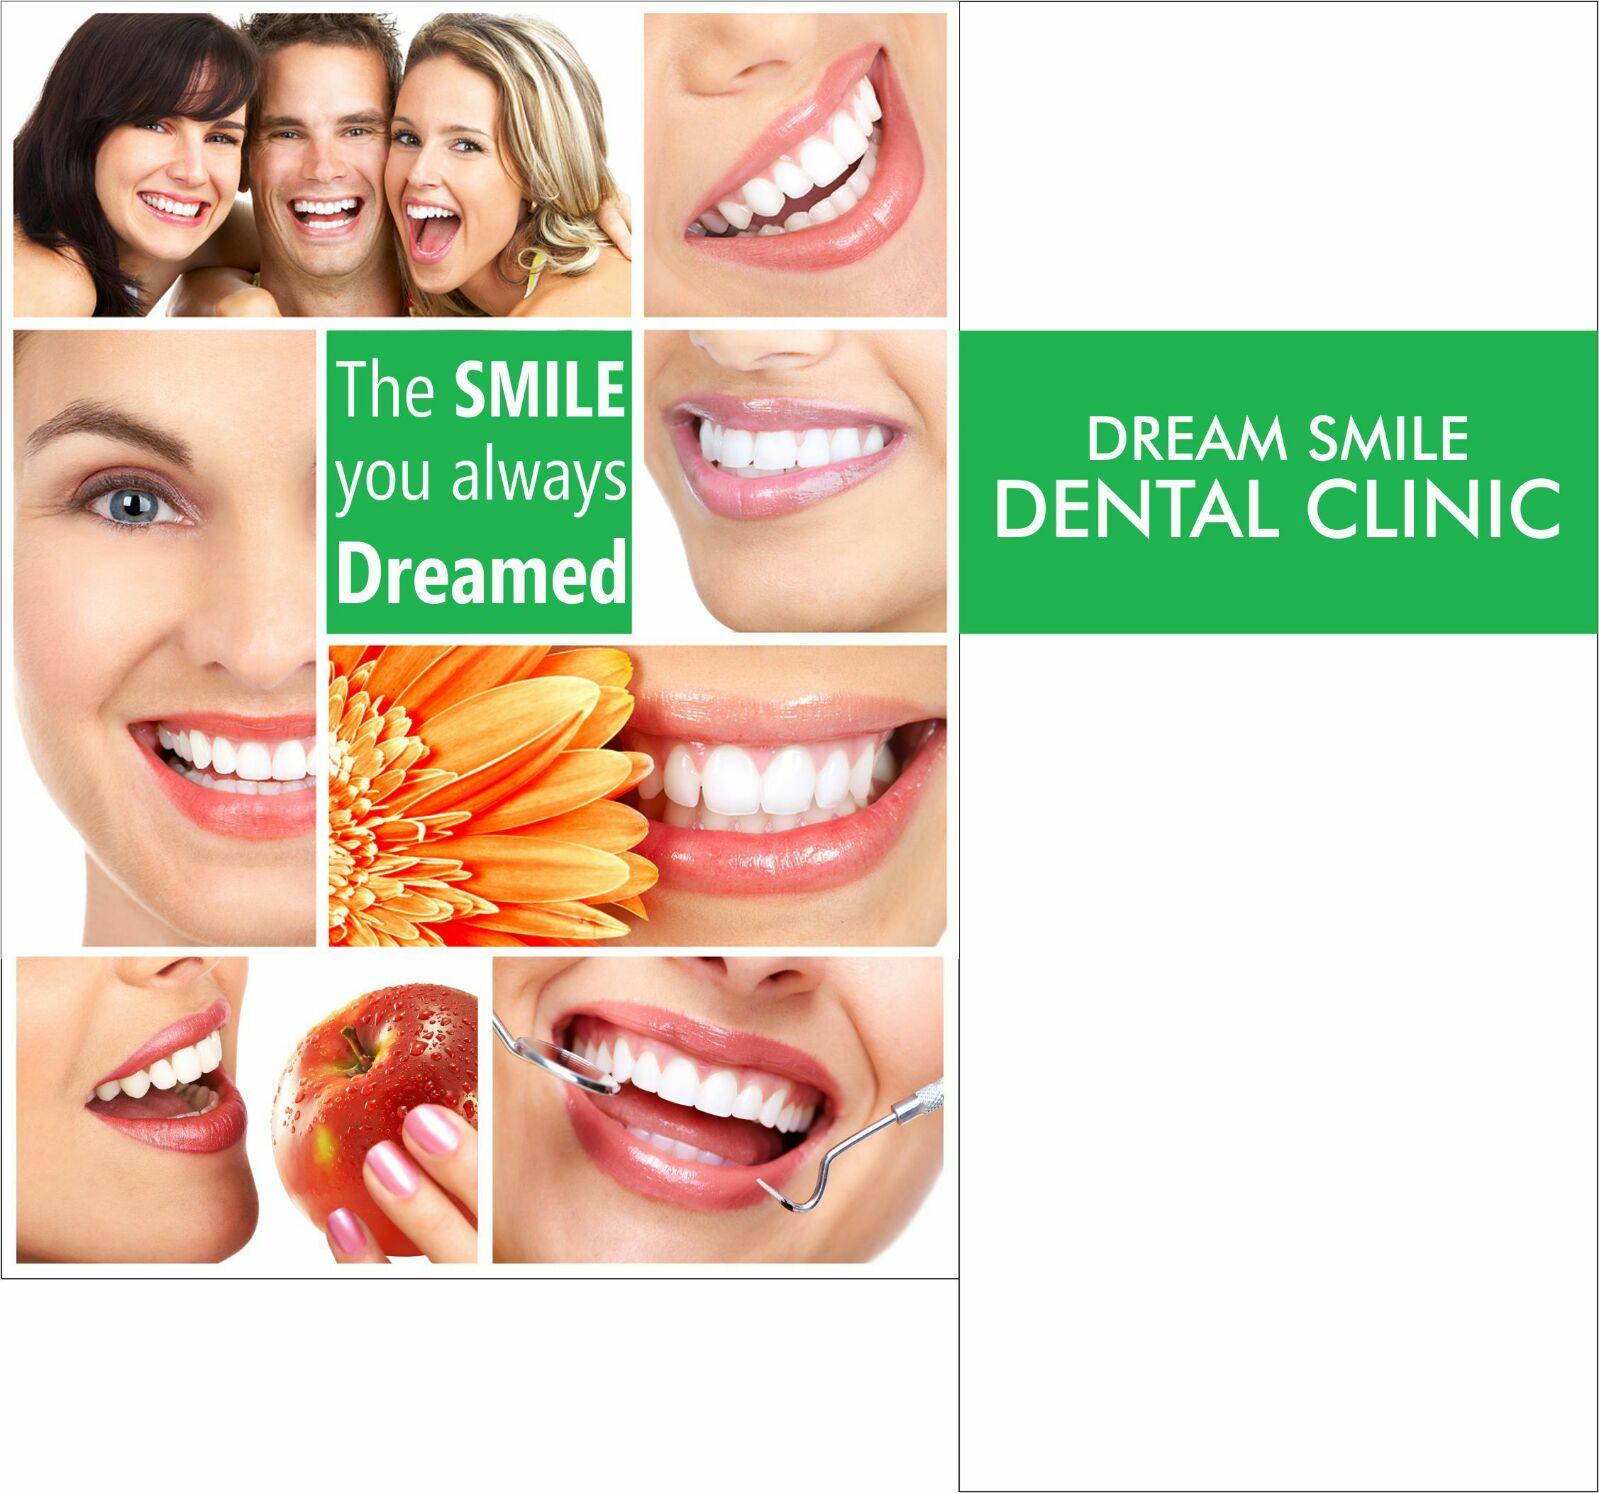 Dream Smile Dental Clinic